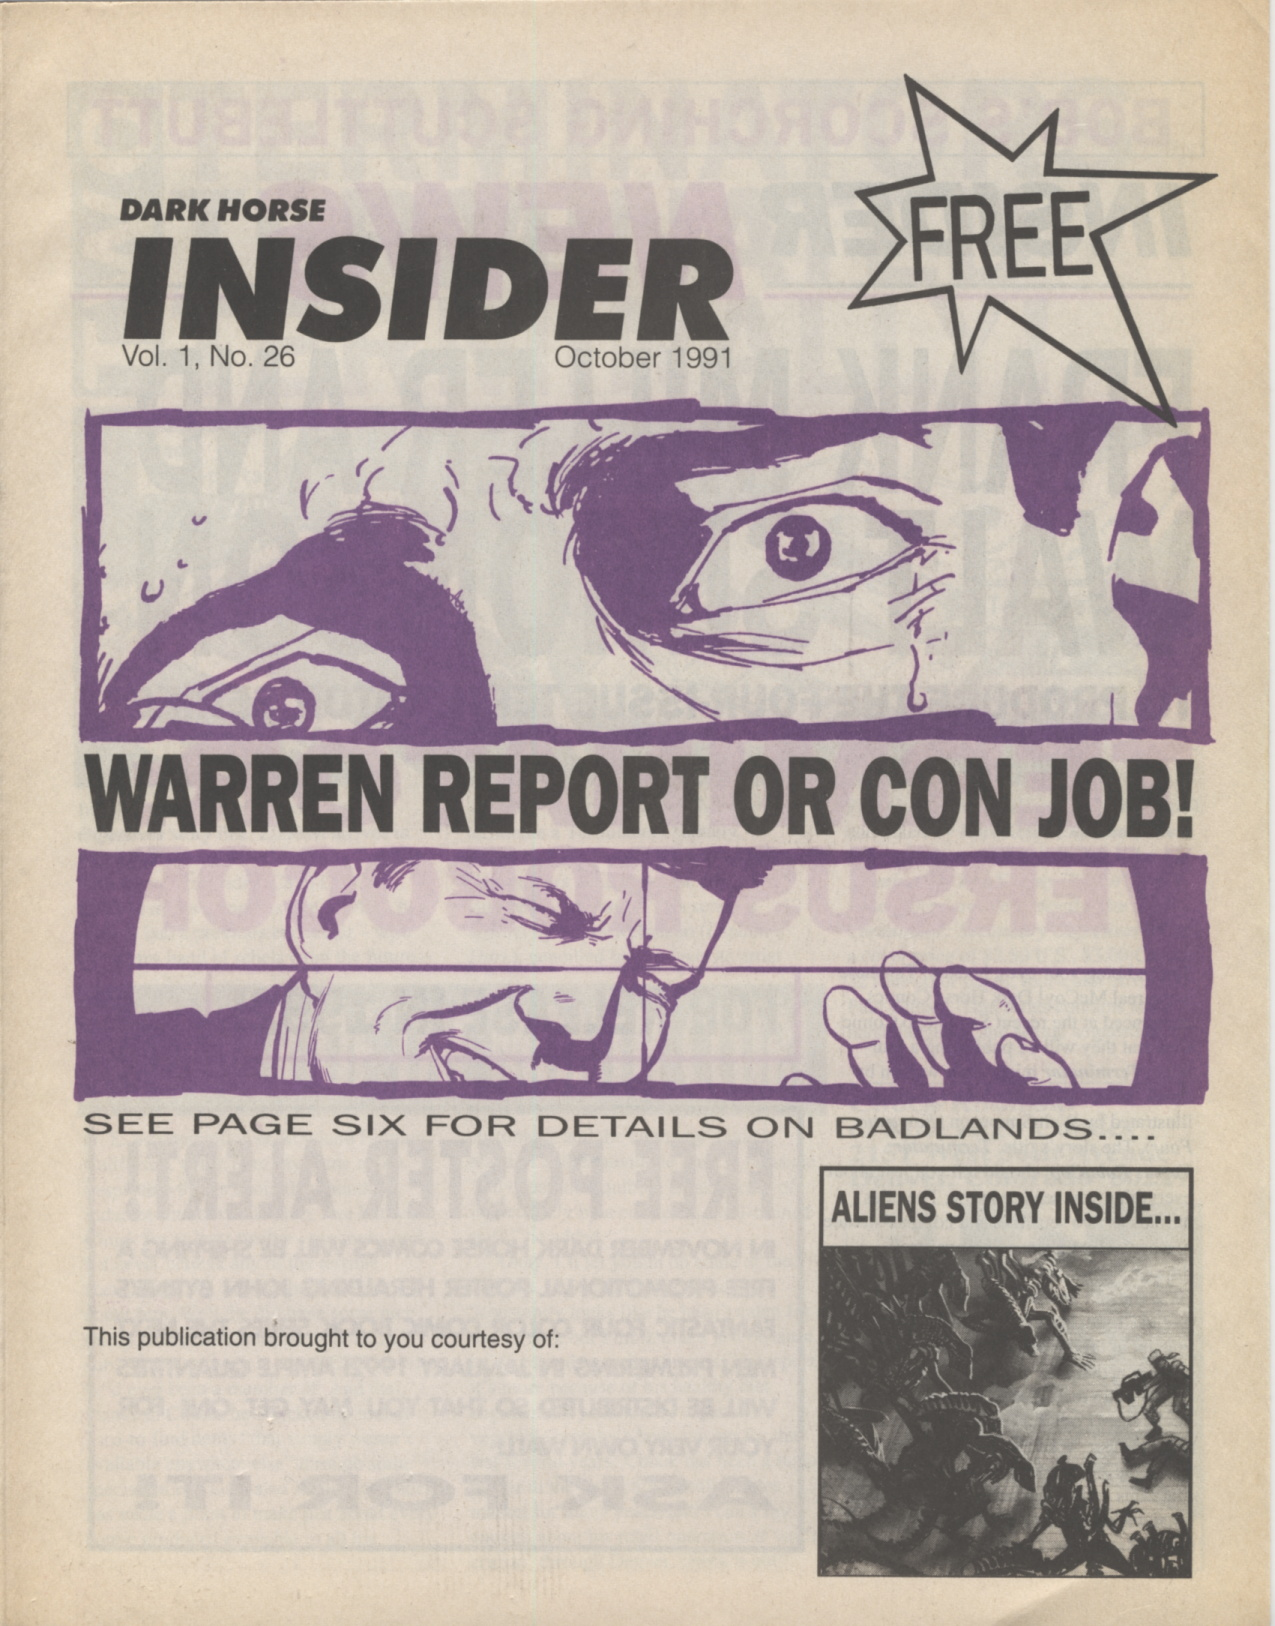 Time Capsule: Dark Horse Insider October 1991